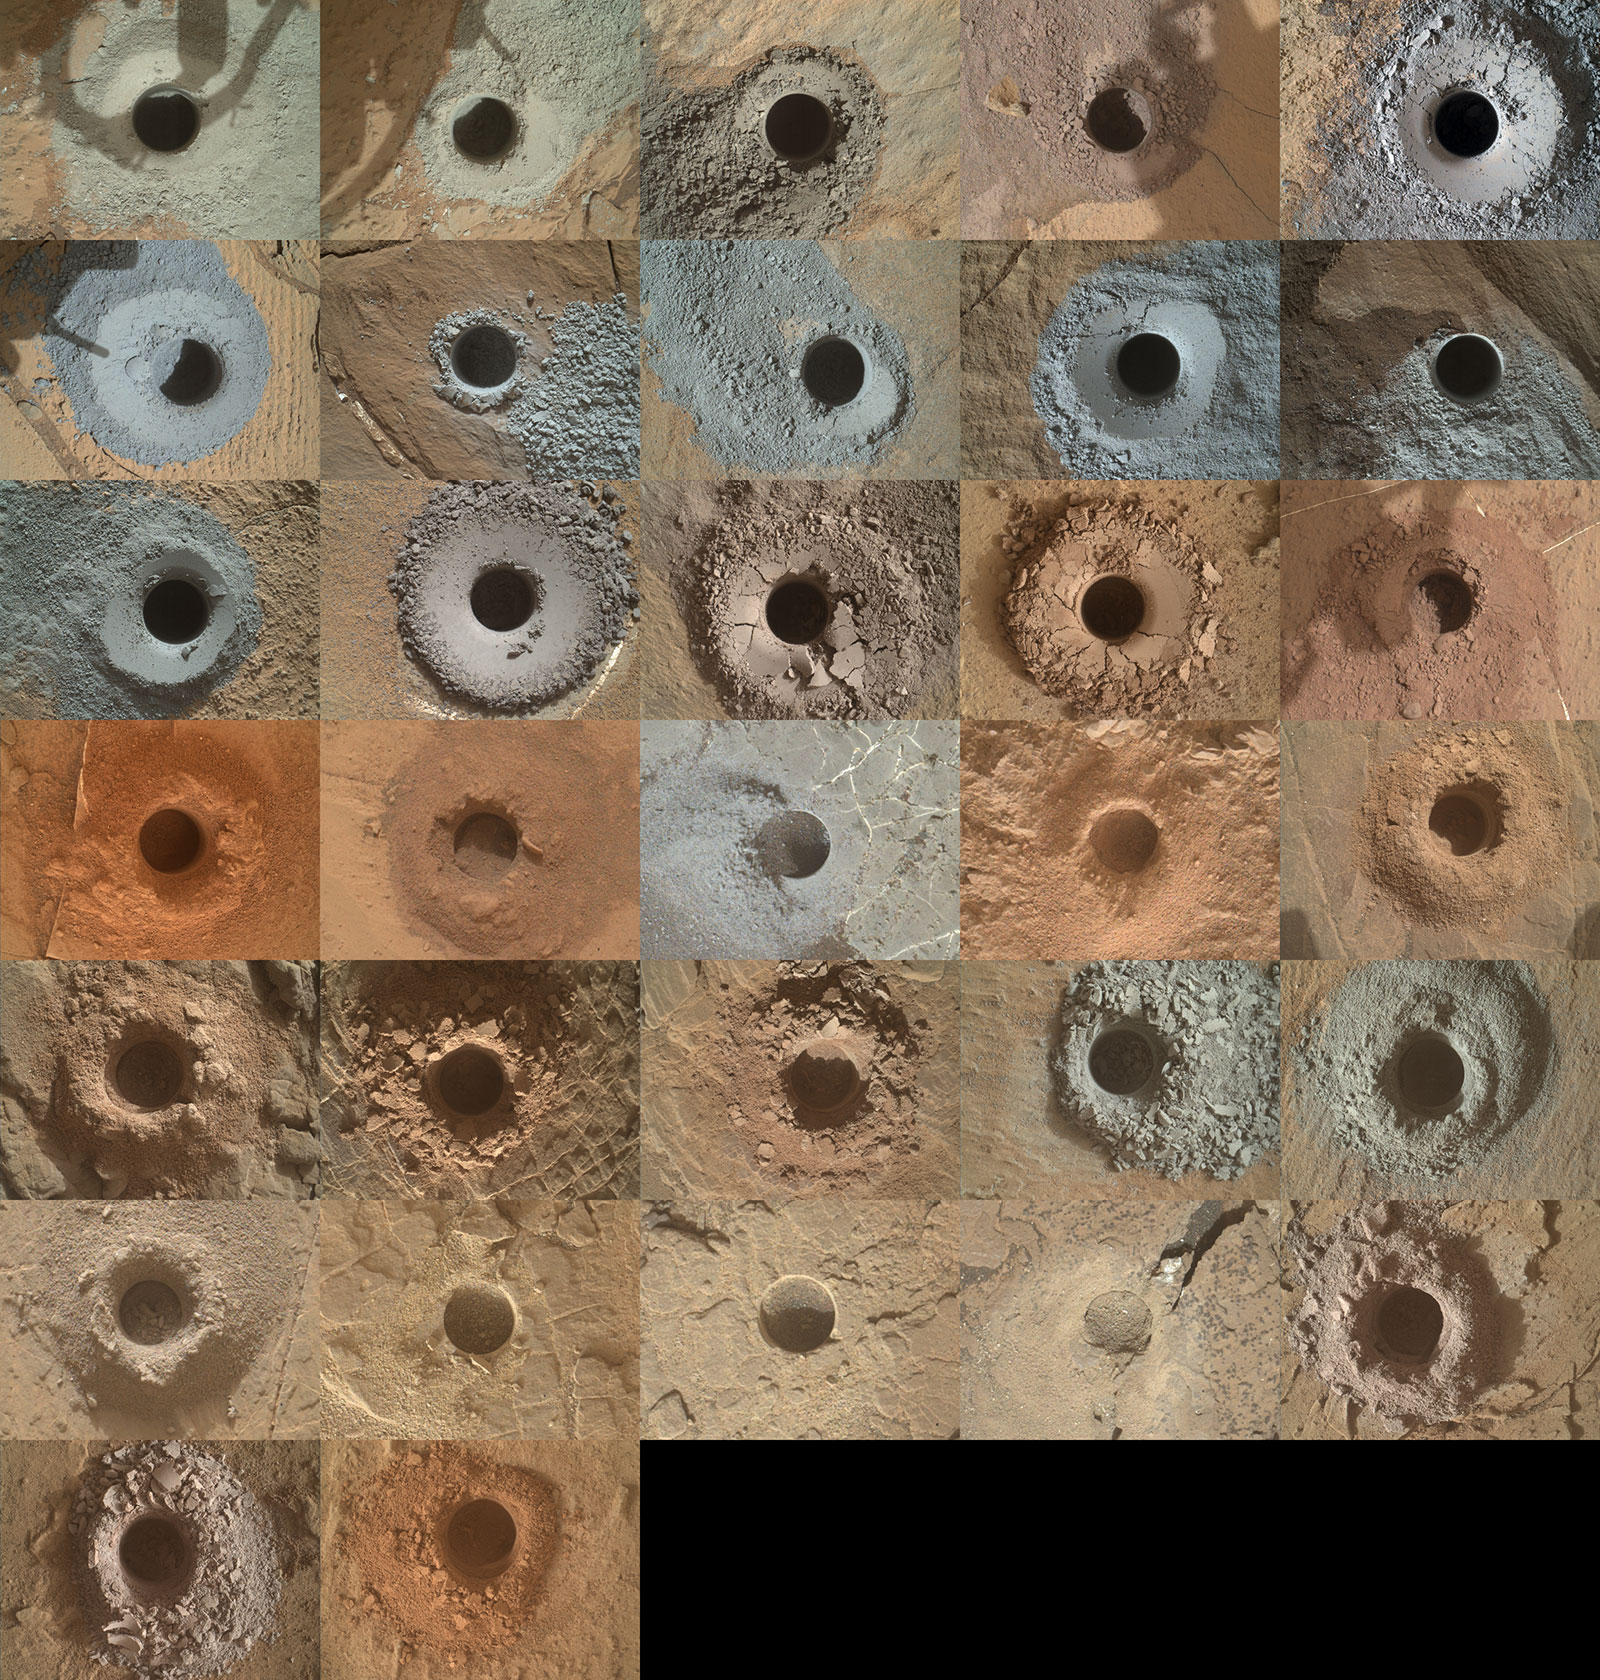 NASA's Curiosity Mars rover has used the drill on its robotic arm to take 32 rock samples to date. The Mars Hand Lens Imager (MAHLI), a camera on the end of the robotic arm, provided the images in this mosaic.